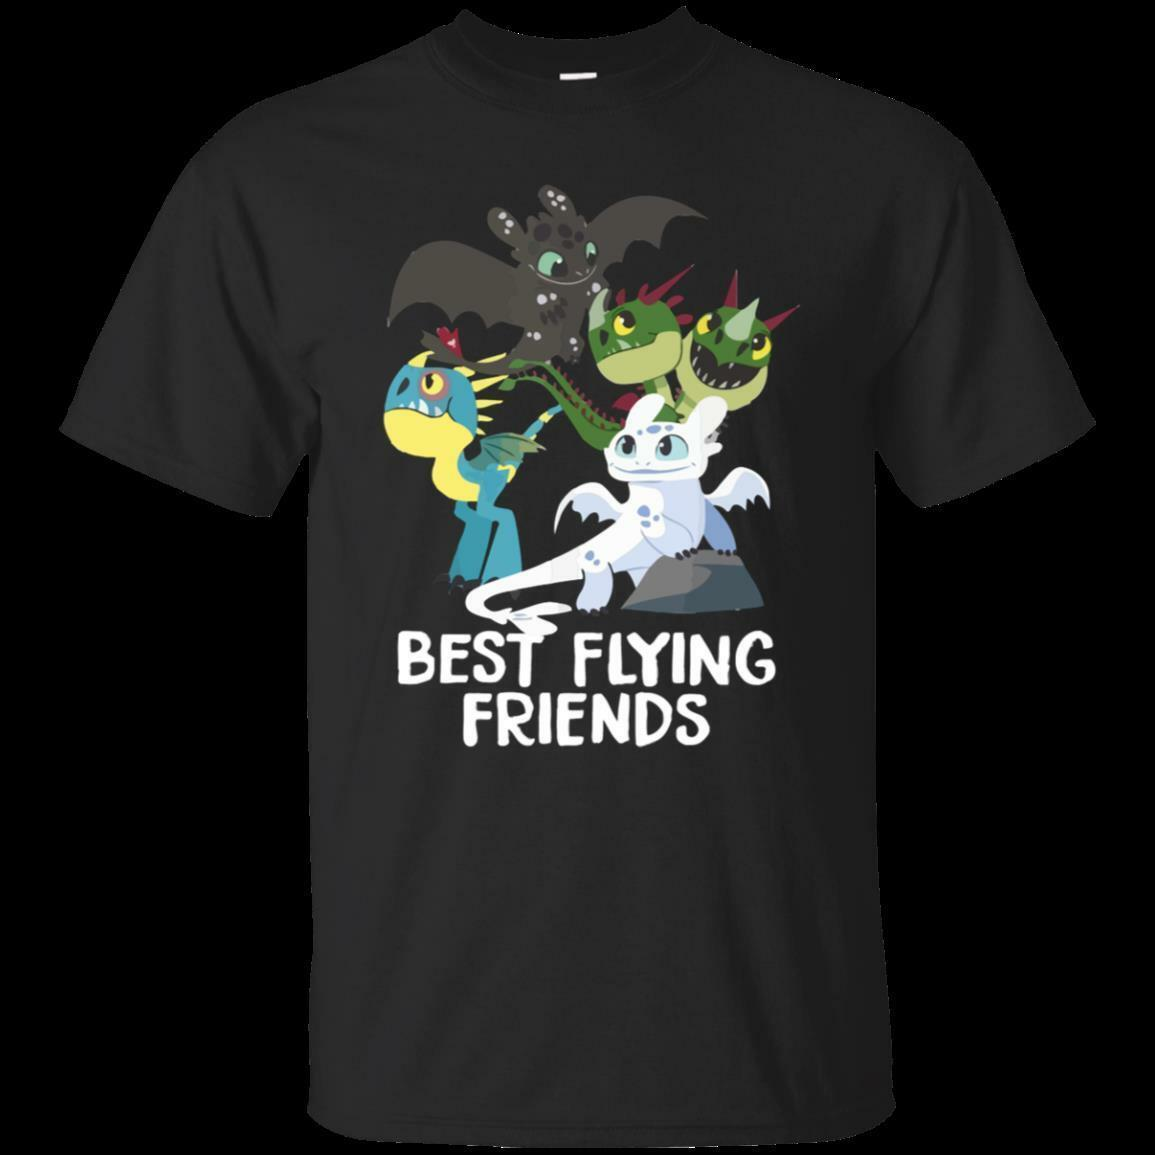 0c7bd8ea0 DreamWorks How To Train Your Dragon 3 Best Friends Black T Shirt Size S 5XL  Men Women Unisex Fashion Tshirt Black Silly Tee Shirts Tee Shirt Site From  ...